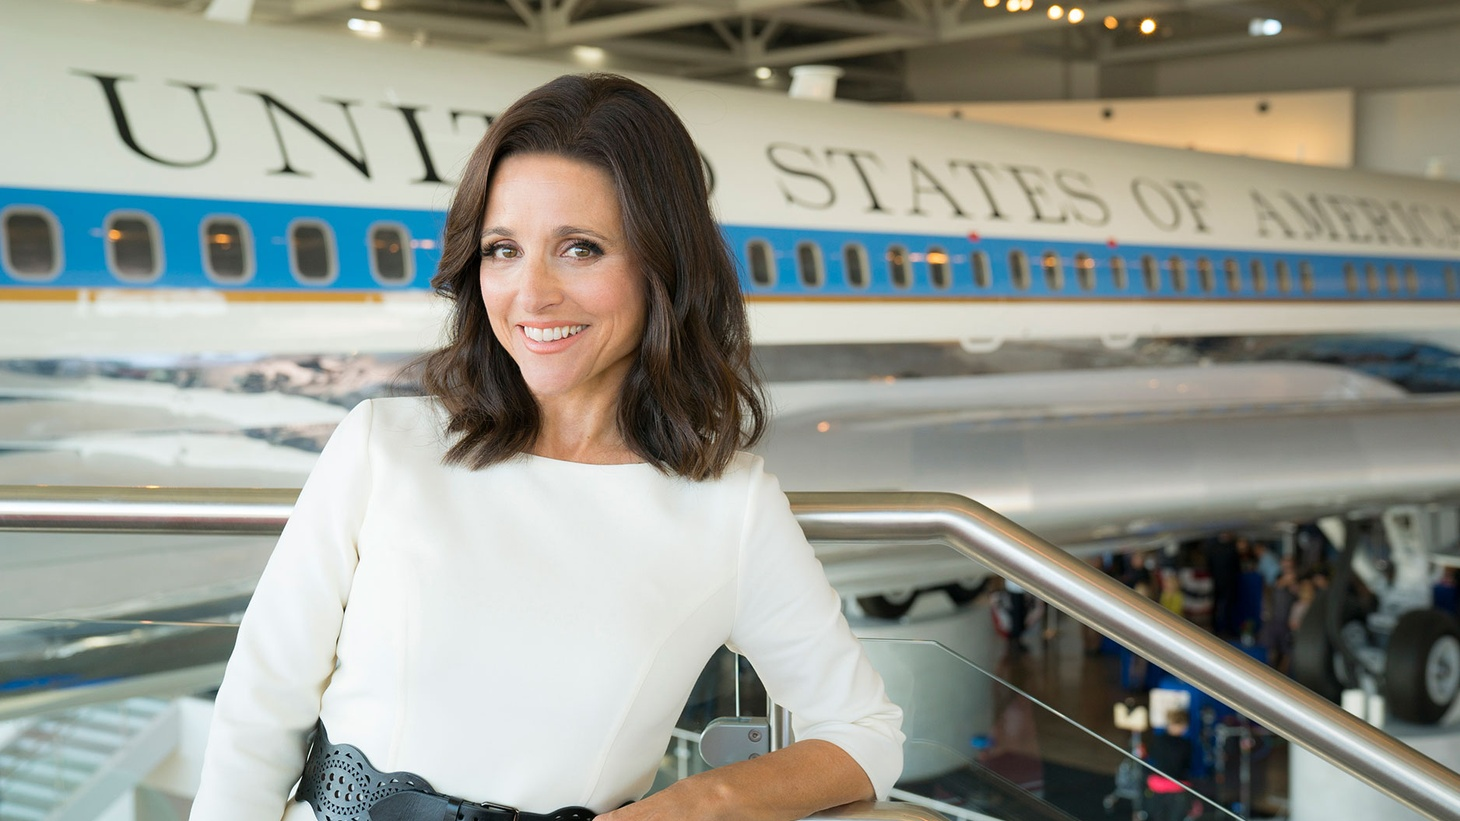 Julia Louis Dreyfus has played politician Selina Meyer for six seasons of HBO's Veep. She's won the Emmy for Outstanding Lead Actress in a comedy series every season the show has been on air. She's nominated again this year. 